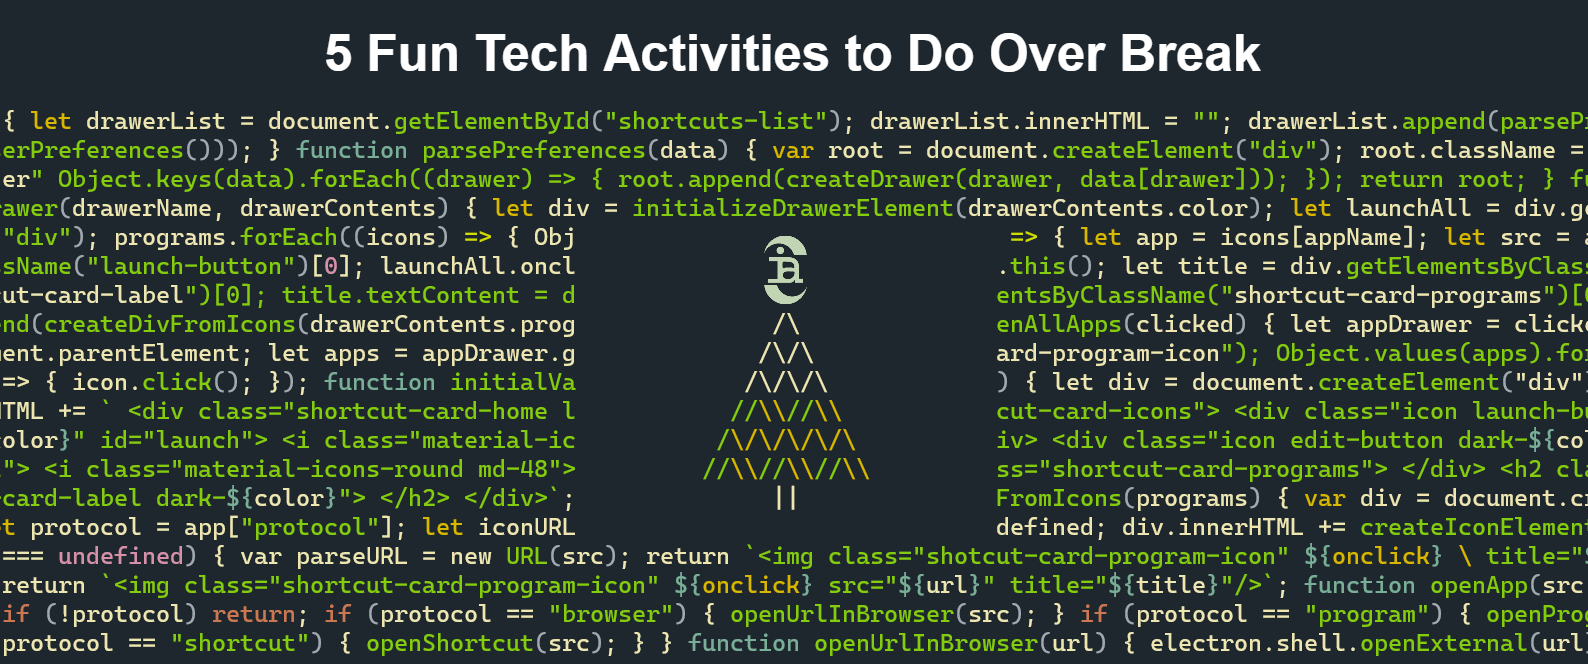 5 Fun Tech Activities to Do Over Break